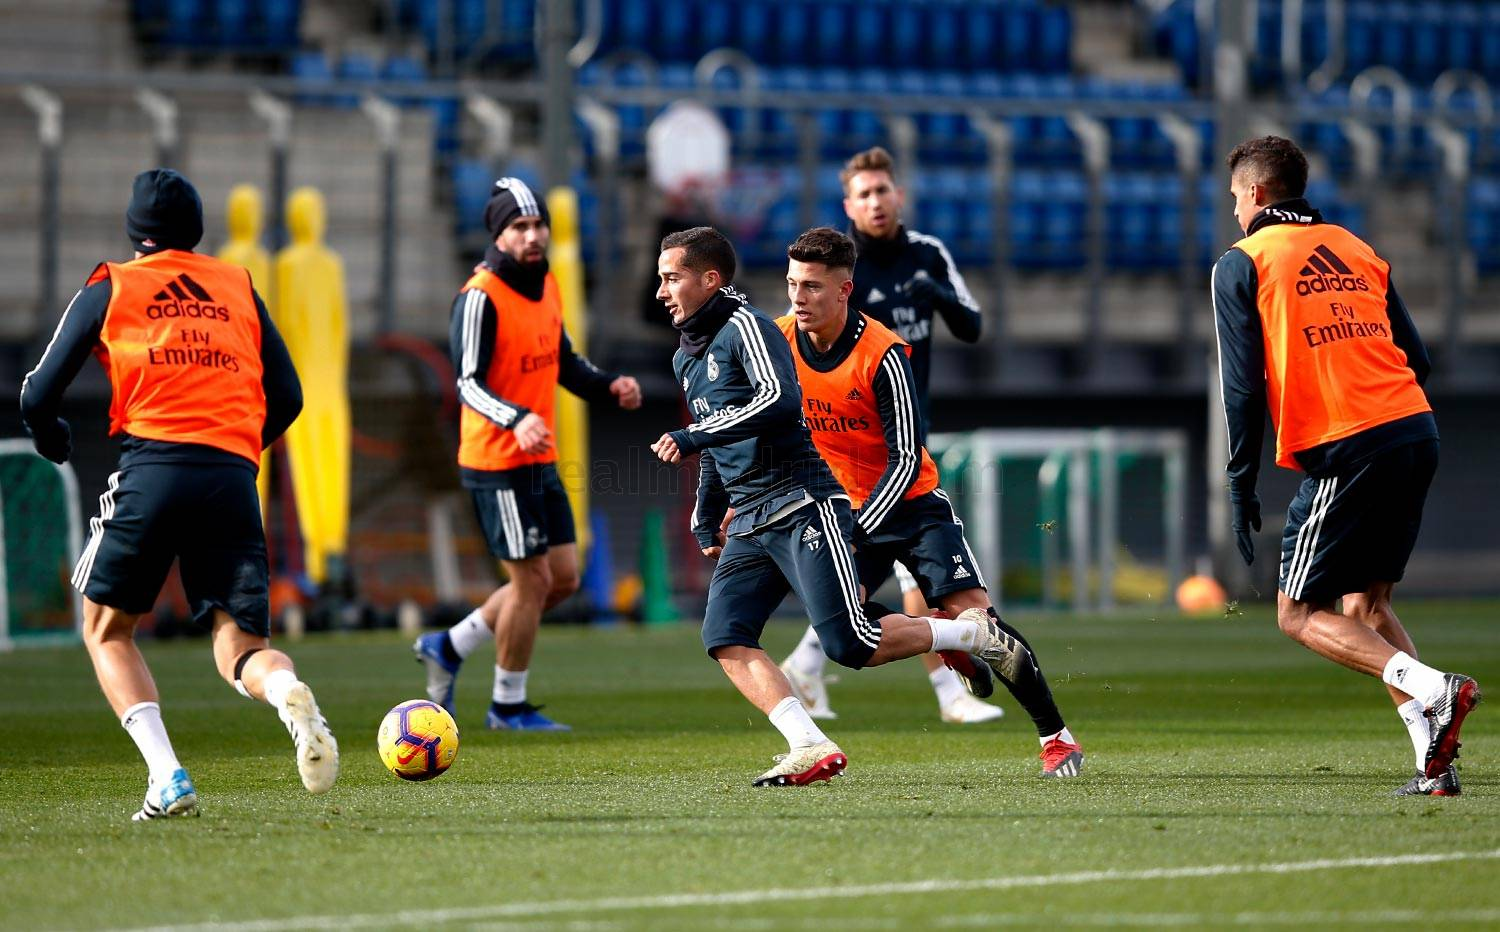 Real Madrid - Entrenamiento del Real Madrid - 13-12-2018